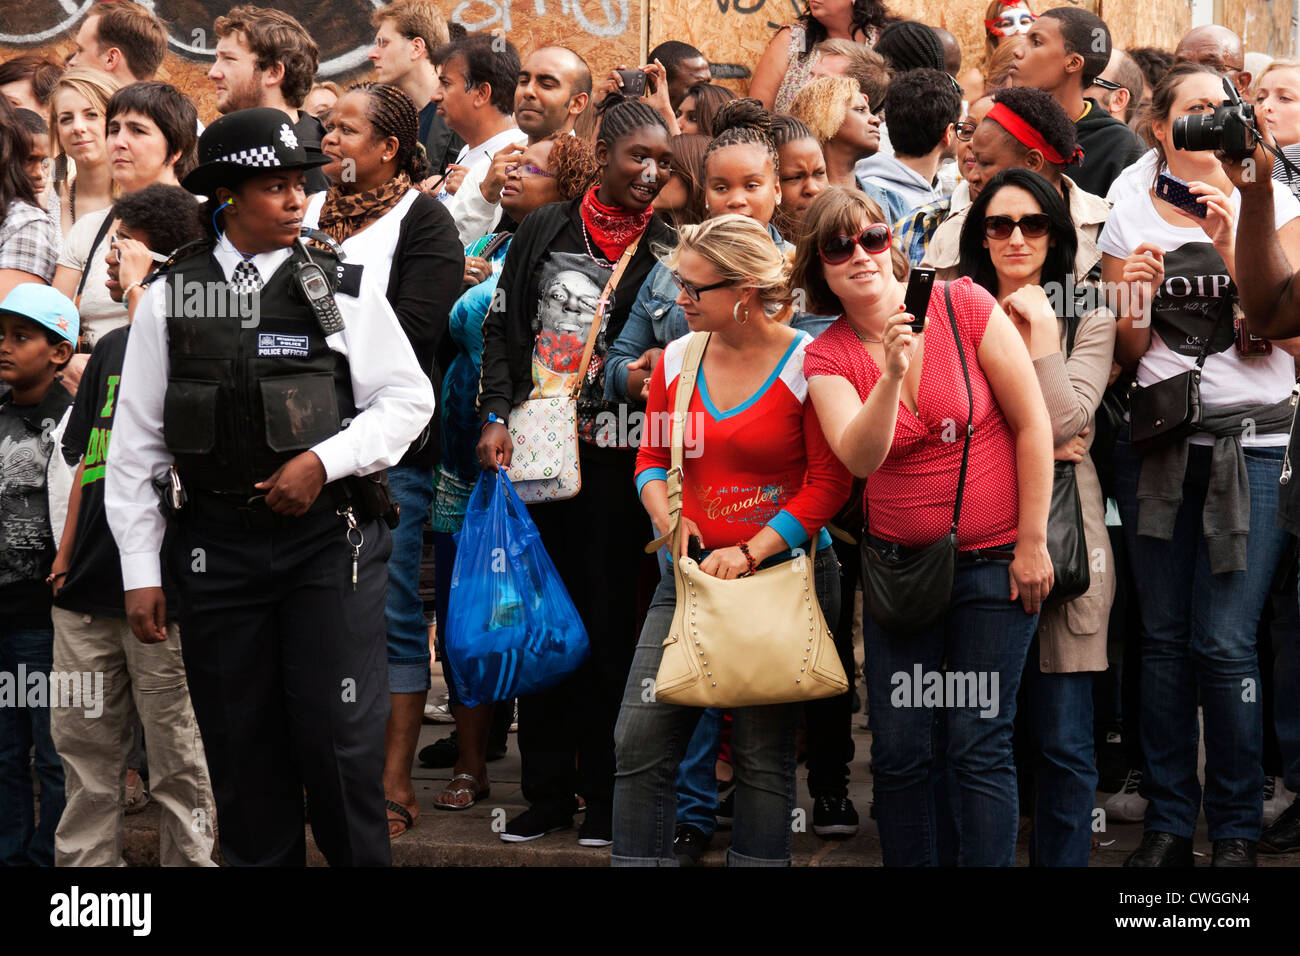 Notting Hill carnival 2012 - Stock Image